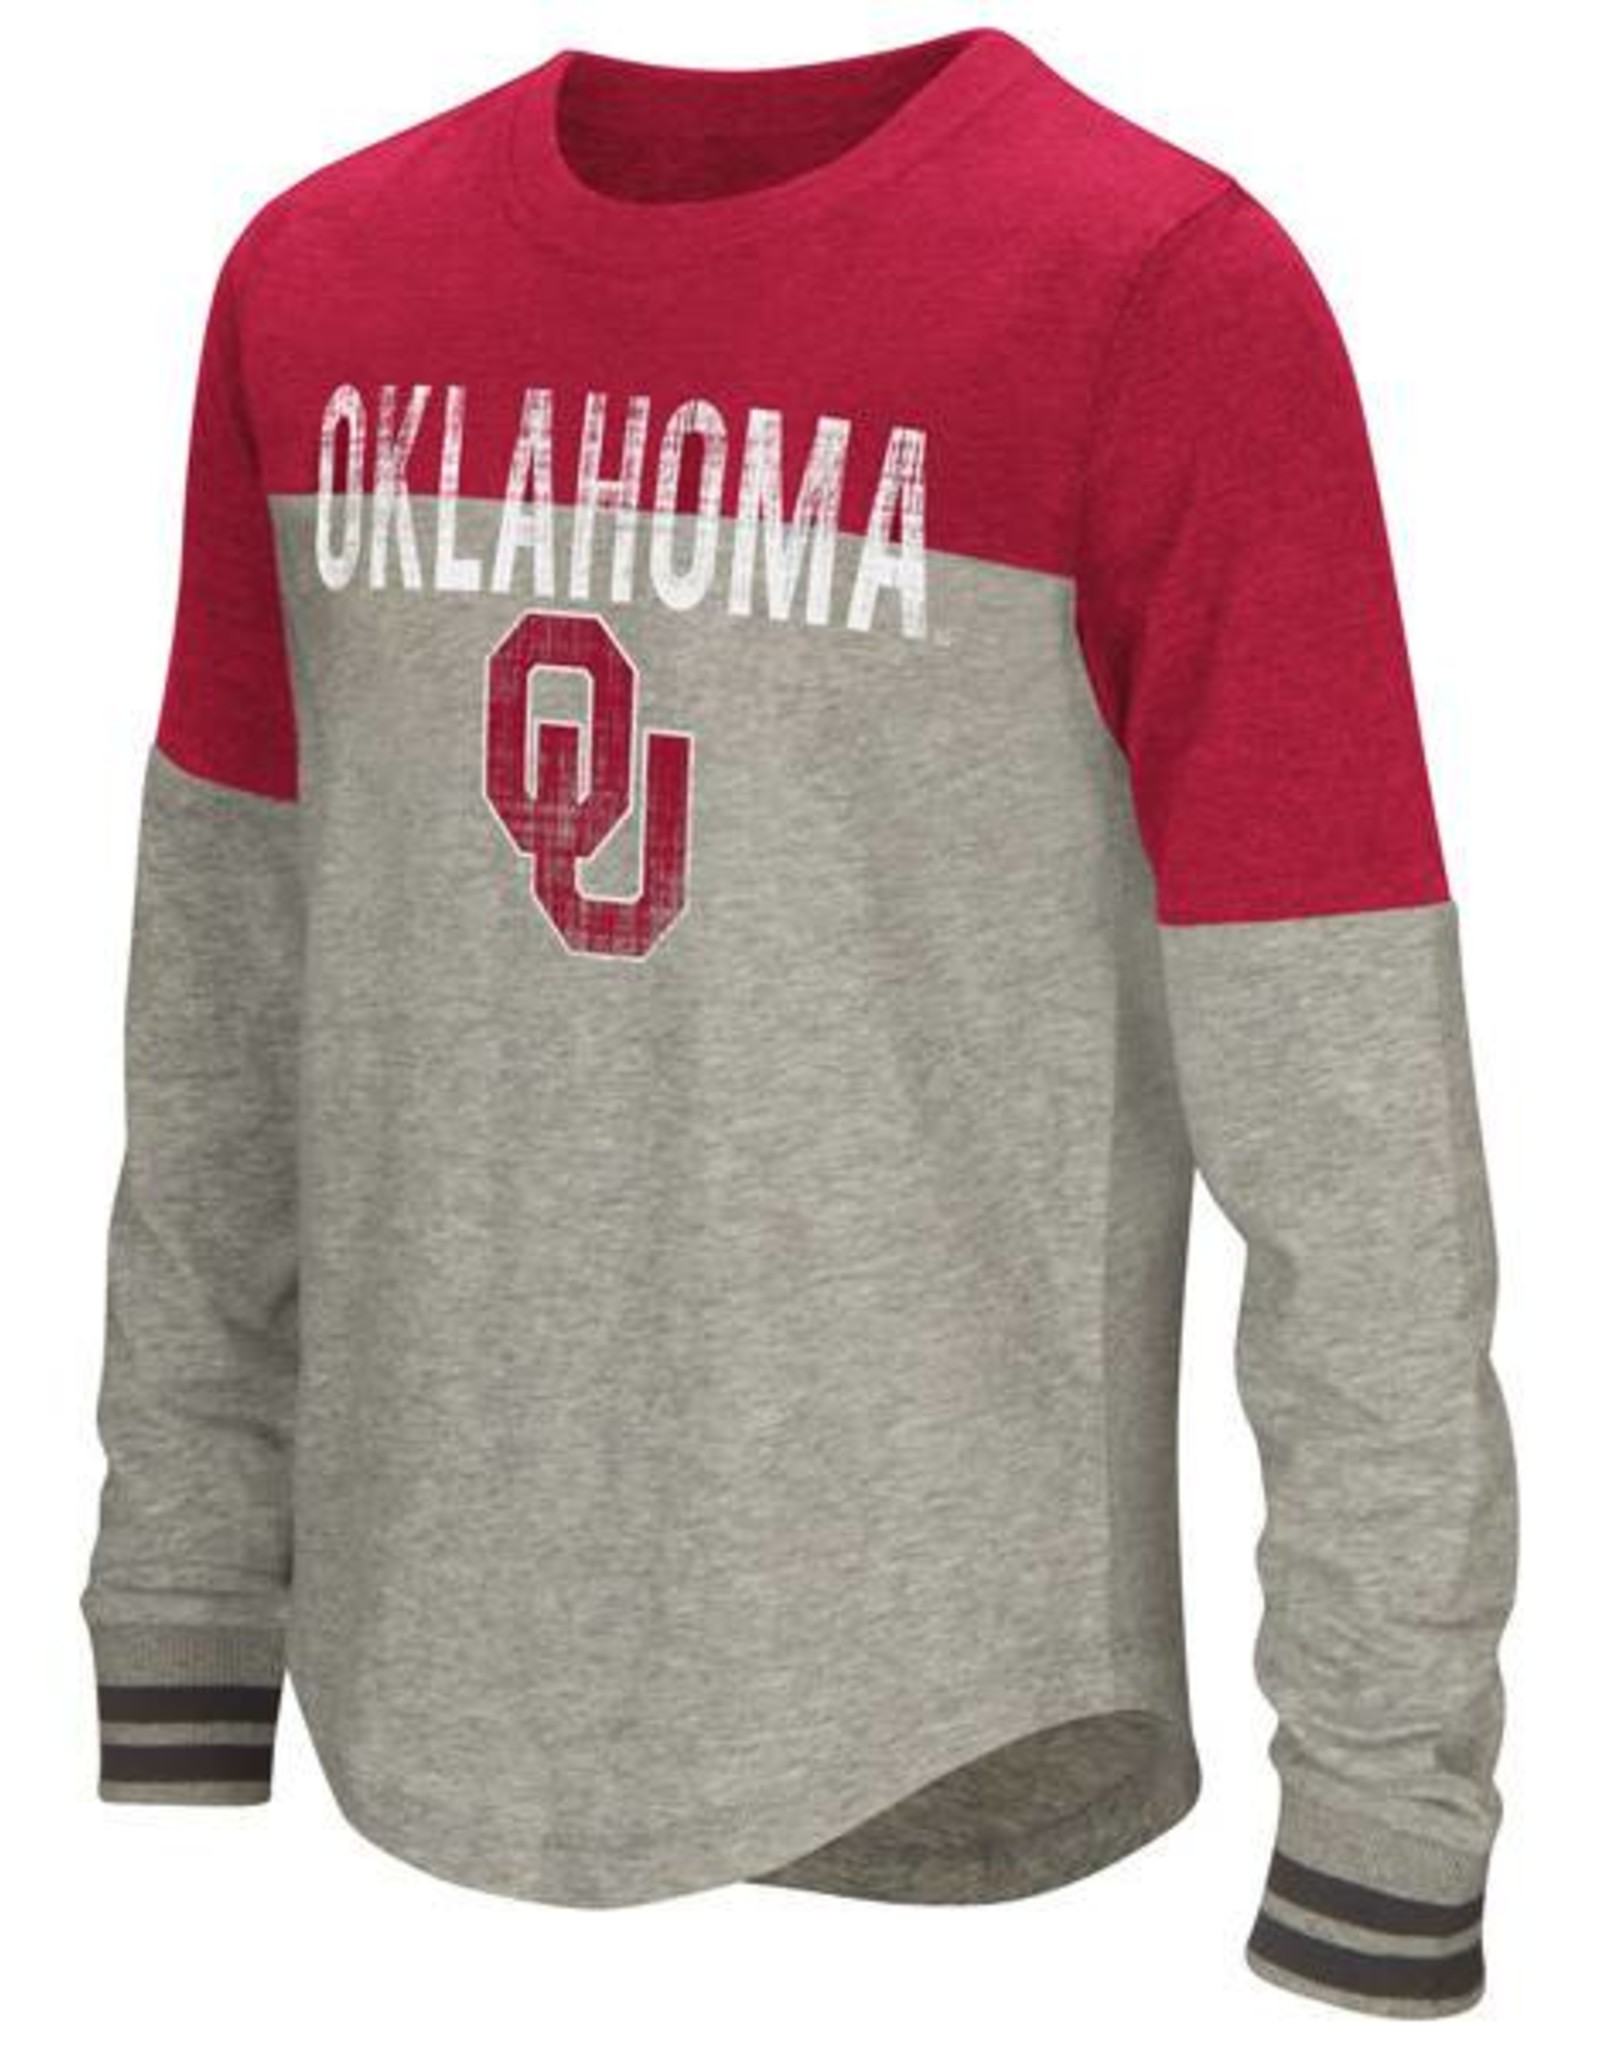 Colosseum Youth Colosseum Jersey Long Sleeve Tee Grey & Crimson with Ribbed Cuffs